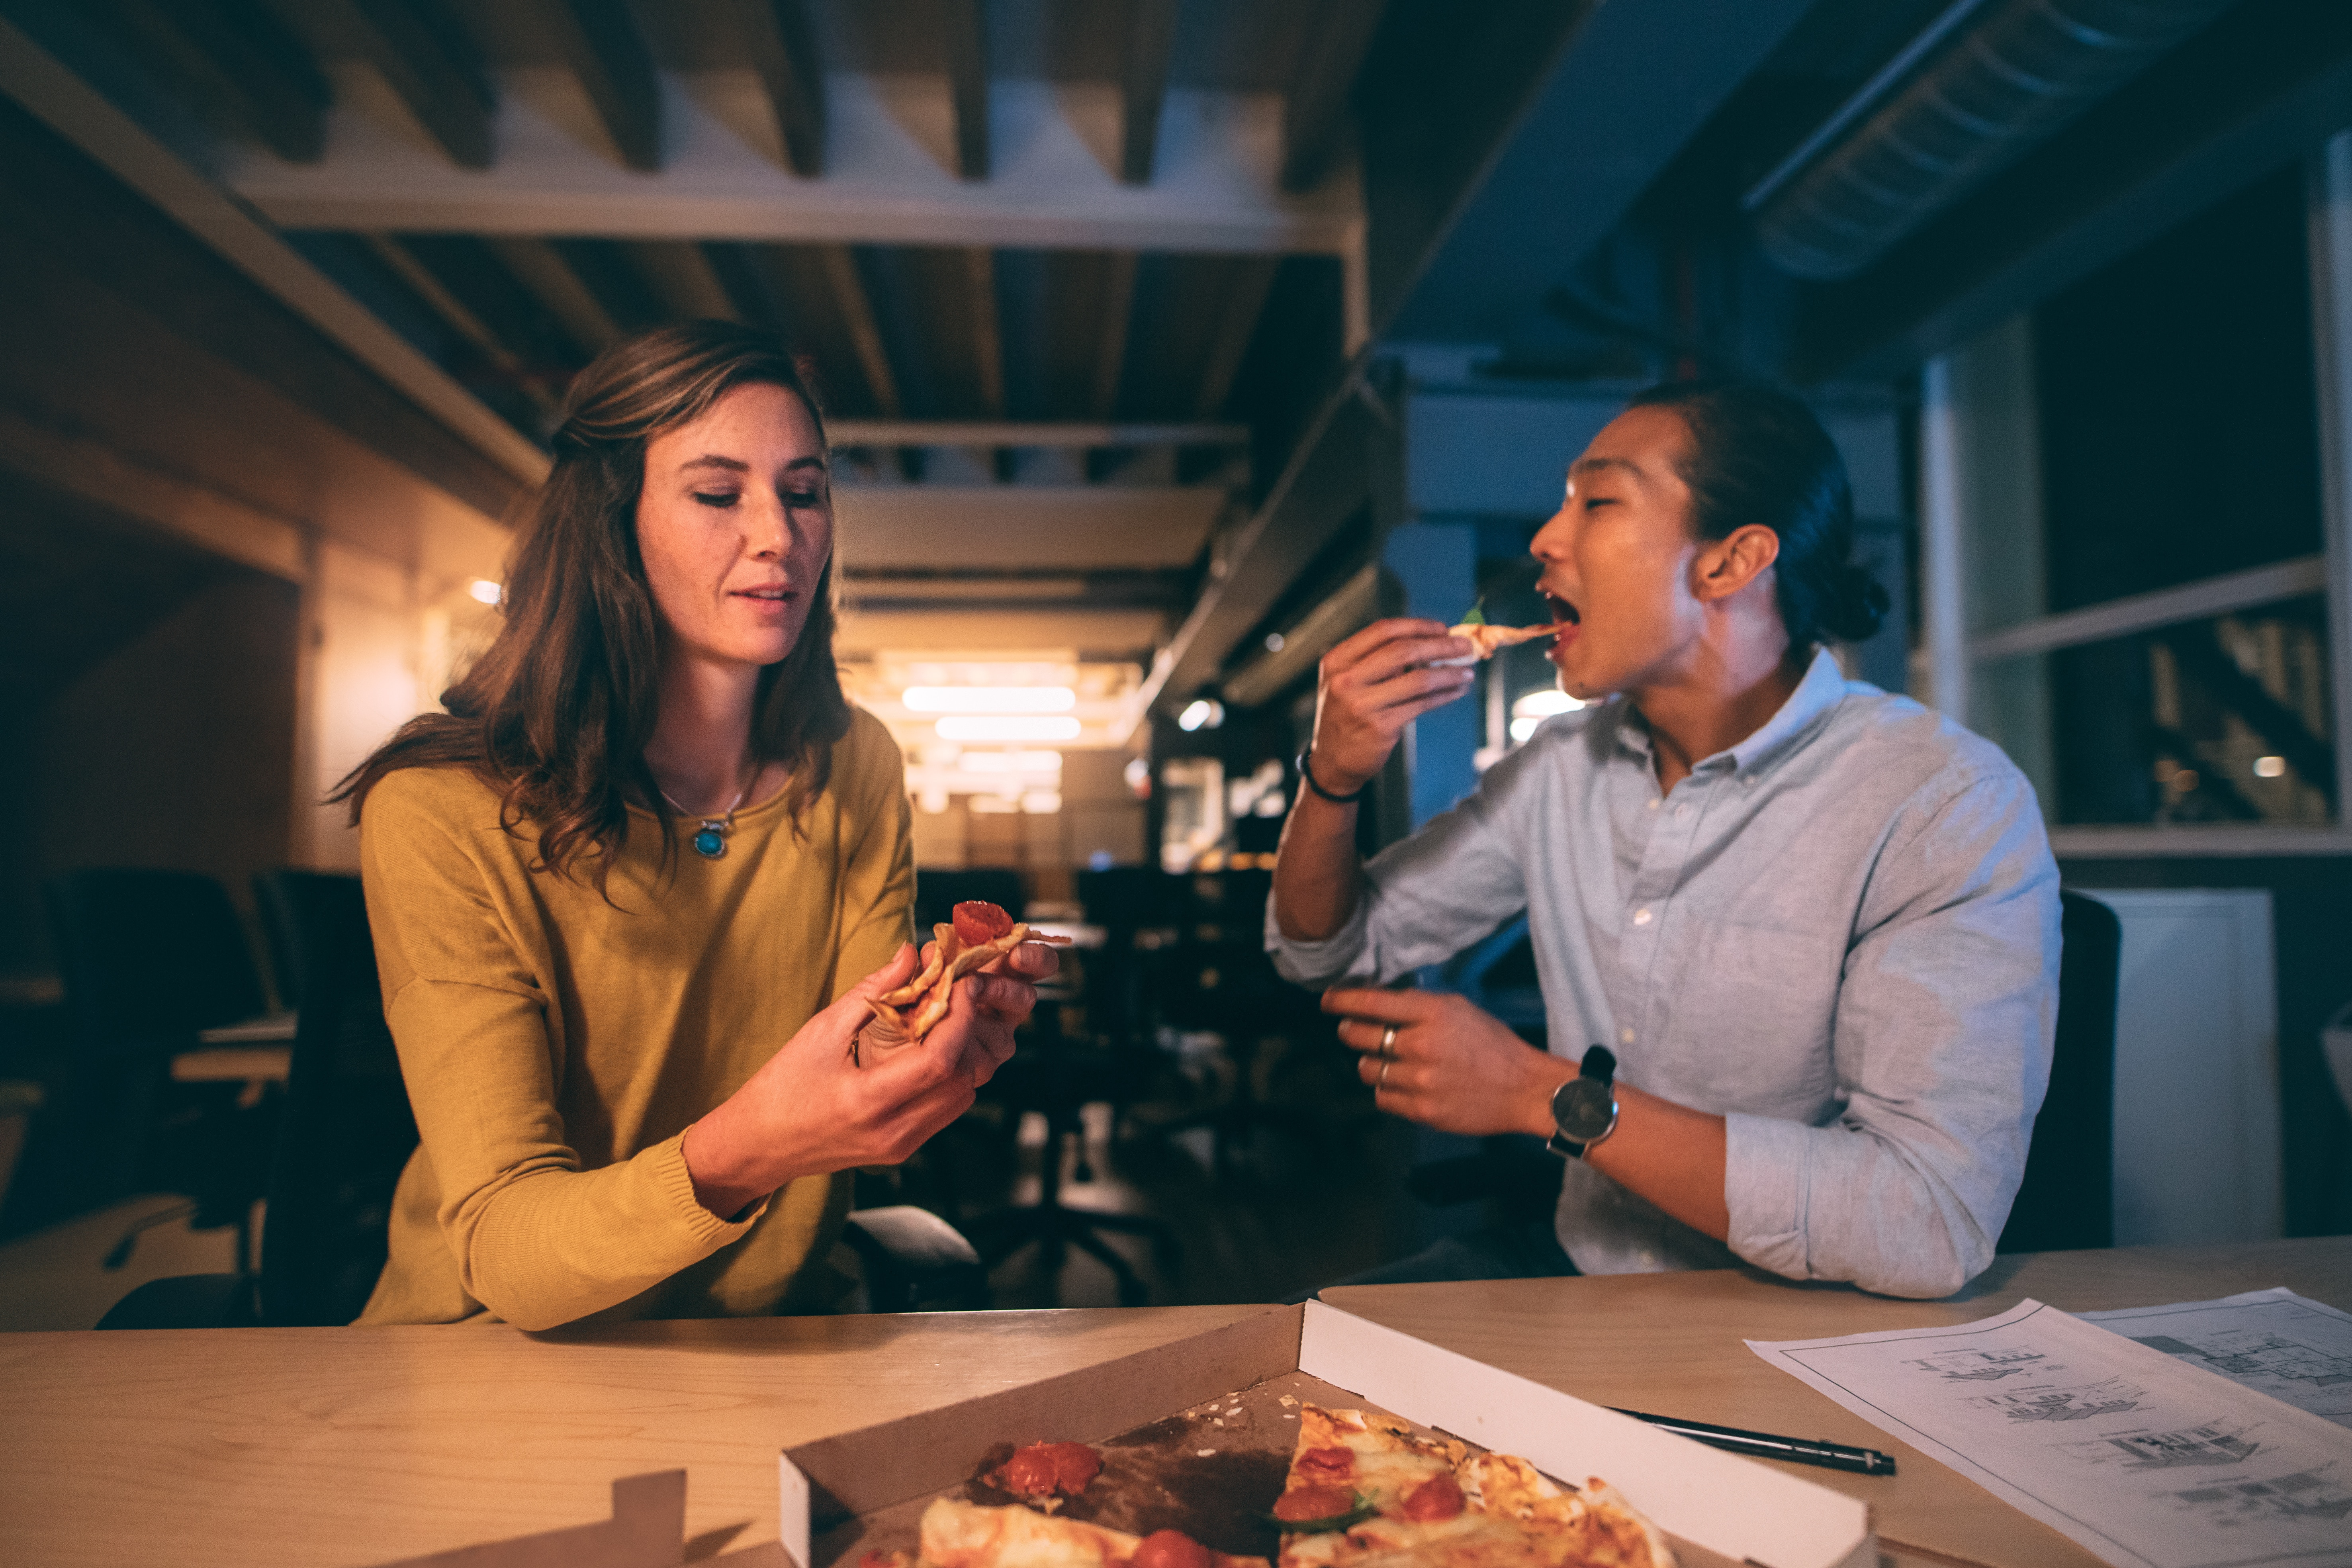 how to stop snacking after dinner